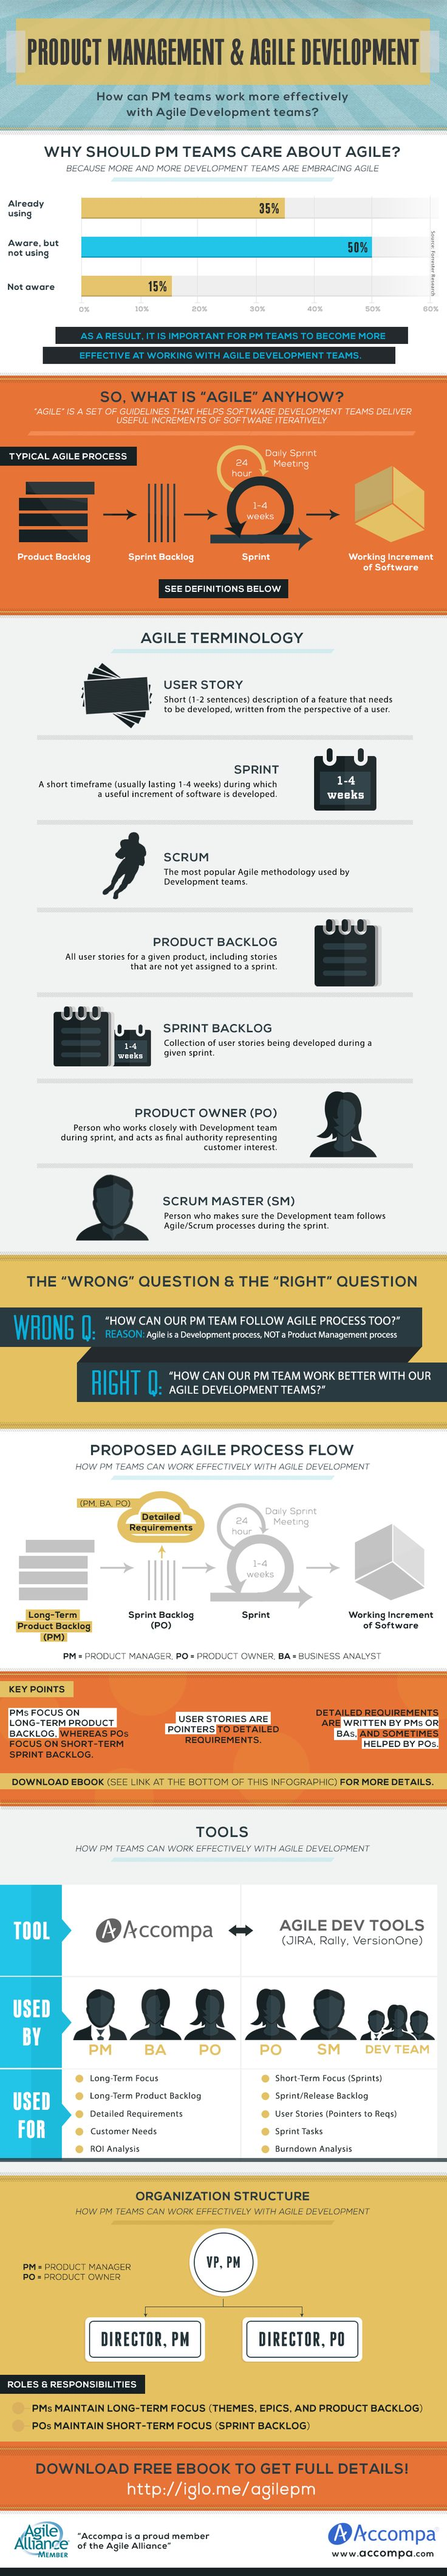 Product-Management-and-Agile-Development-v3